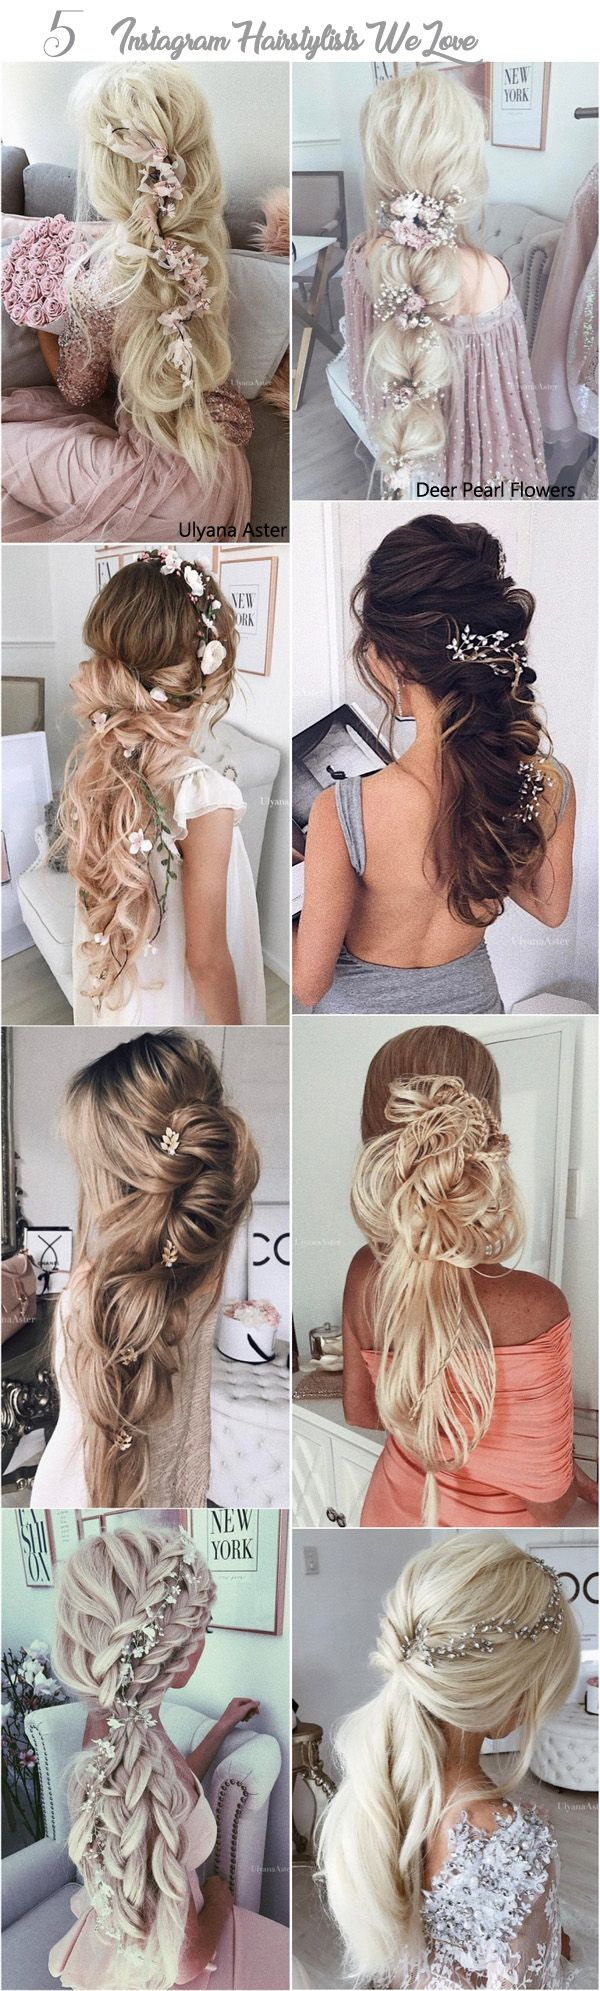 long wedding hairstyles from best instagram hairstylists long